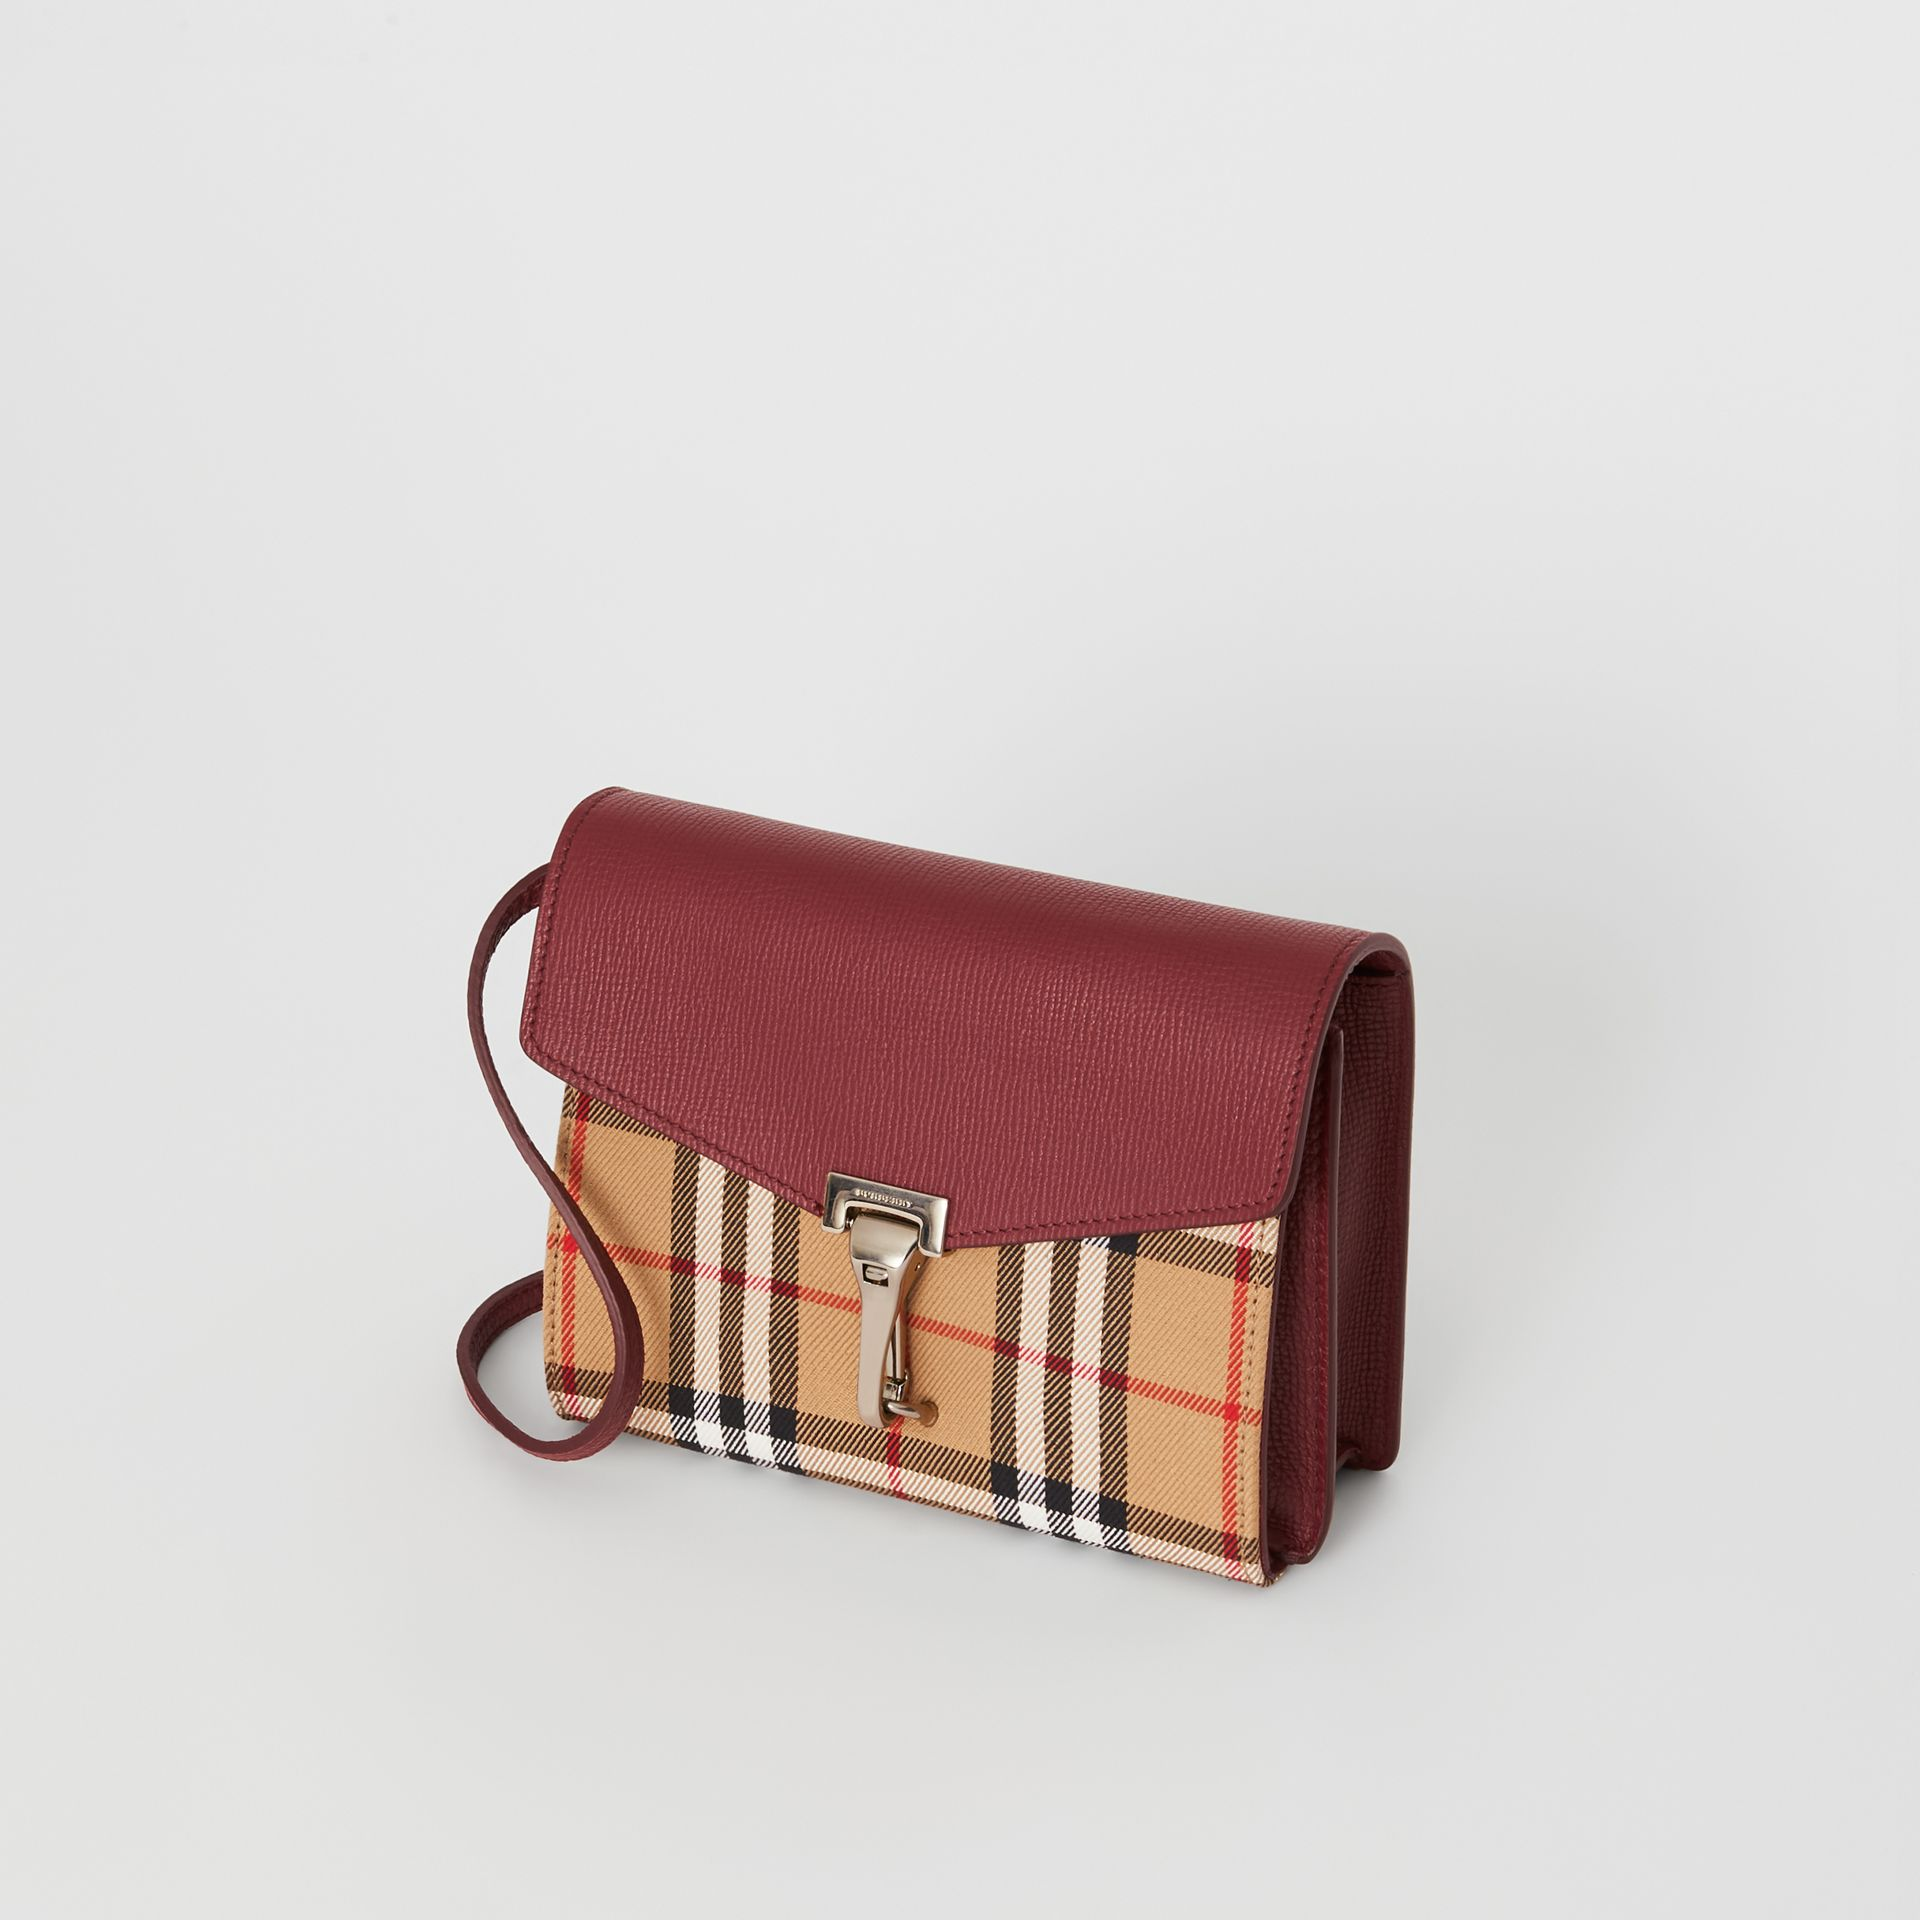 Mini Leather and Vintage Check Crossbody Bag in Crimson - Women | Burberry Australia - gallery image 2